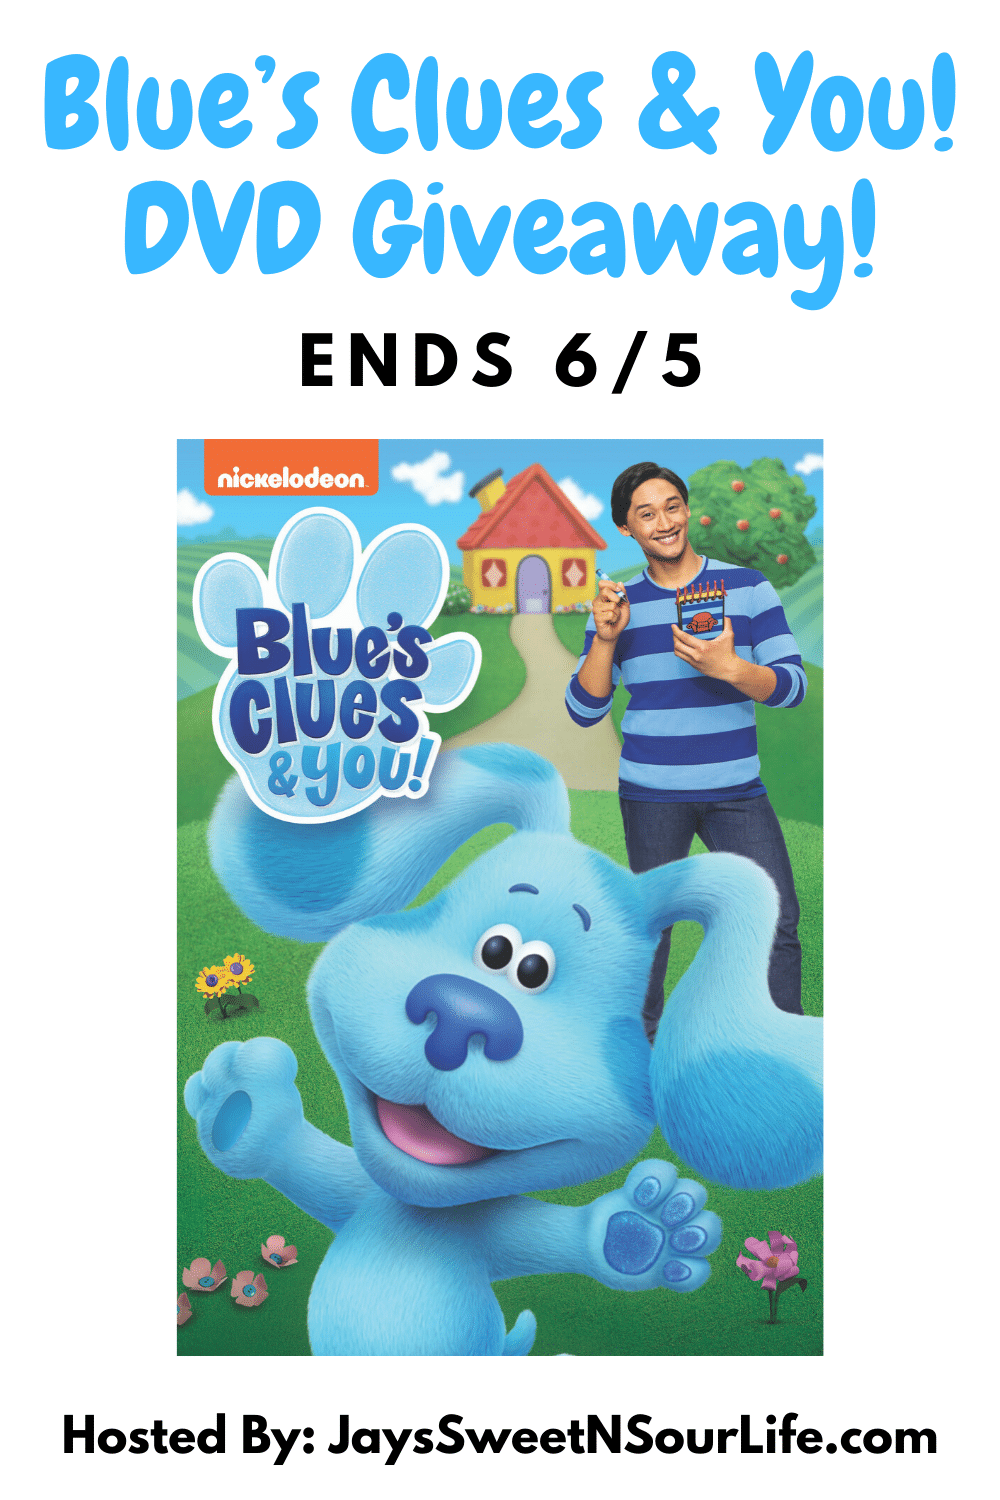 Blues Clues and You DVD Giveaway. Nickelodeon's hit interactive preschool series Blue's Clues & You! will skidoo onto DVD for the first time on June 2 featuring four exciting episodes from the show's debut season. The series follows beloved puppy Blue and live-action host Josh (Josh Dela Cruz) as they invite a new generation of preschoolers on clue-led adventures and solve a puzzle in each episode. Enter to win a free copy of Blue's Clues & You! on my blog today! Giveaway ends 6/5.